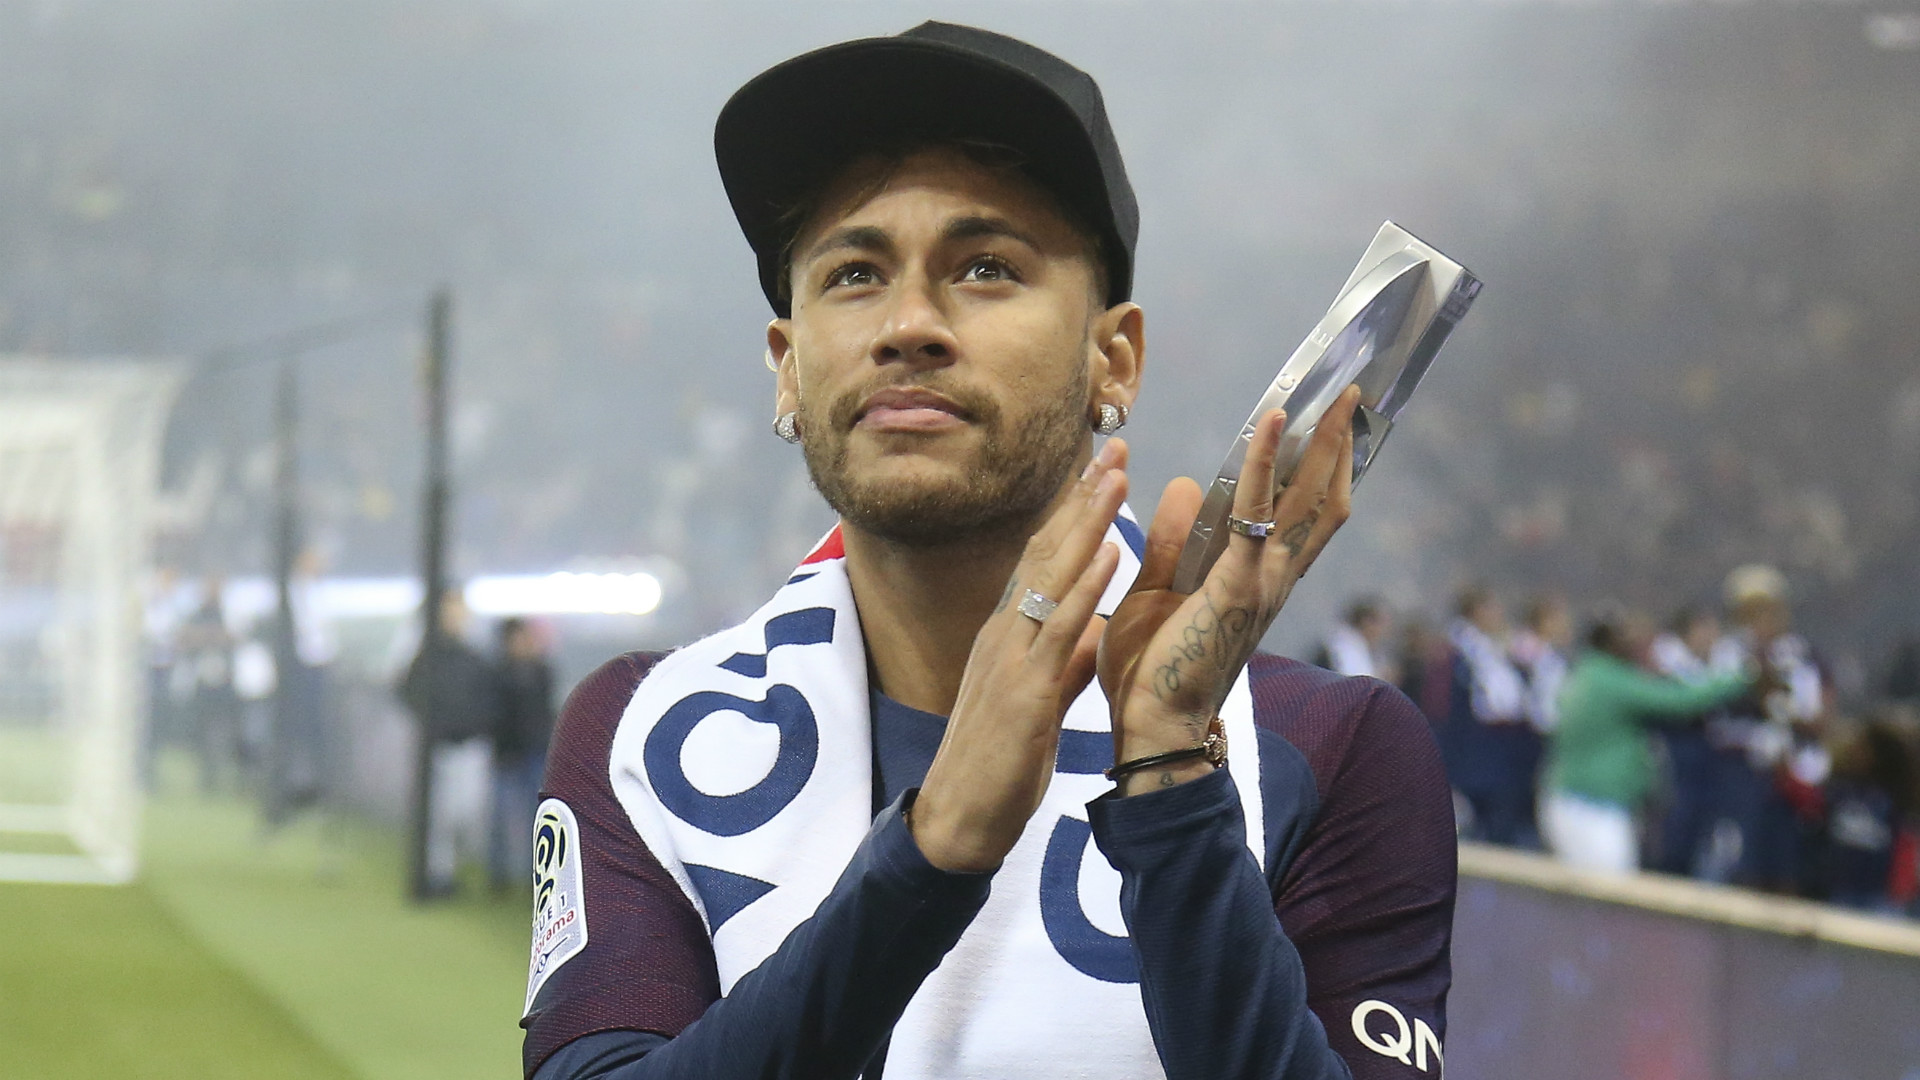 Neymar: I'm staying at PSG and I won't change my mind